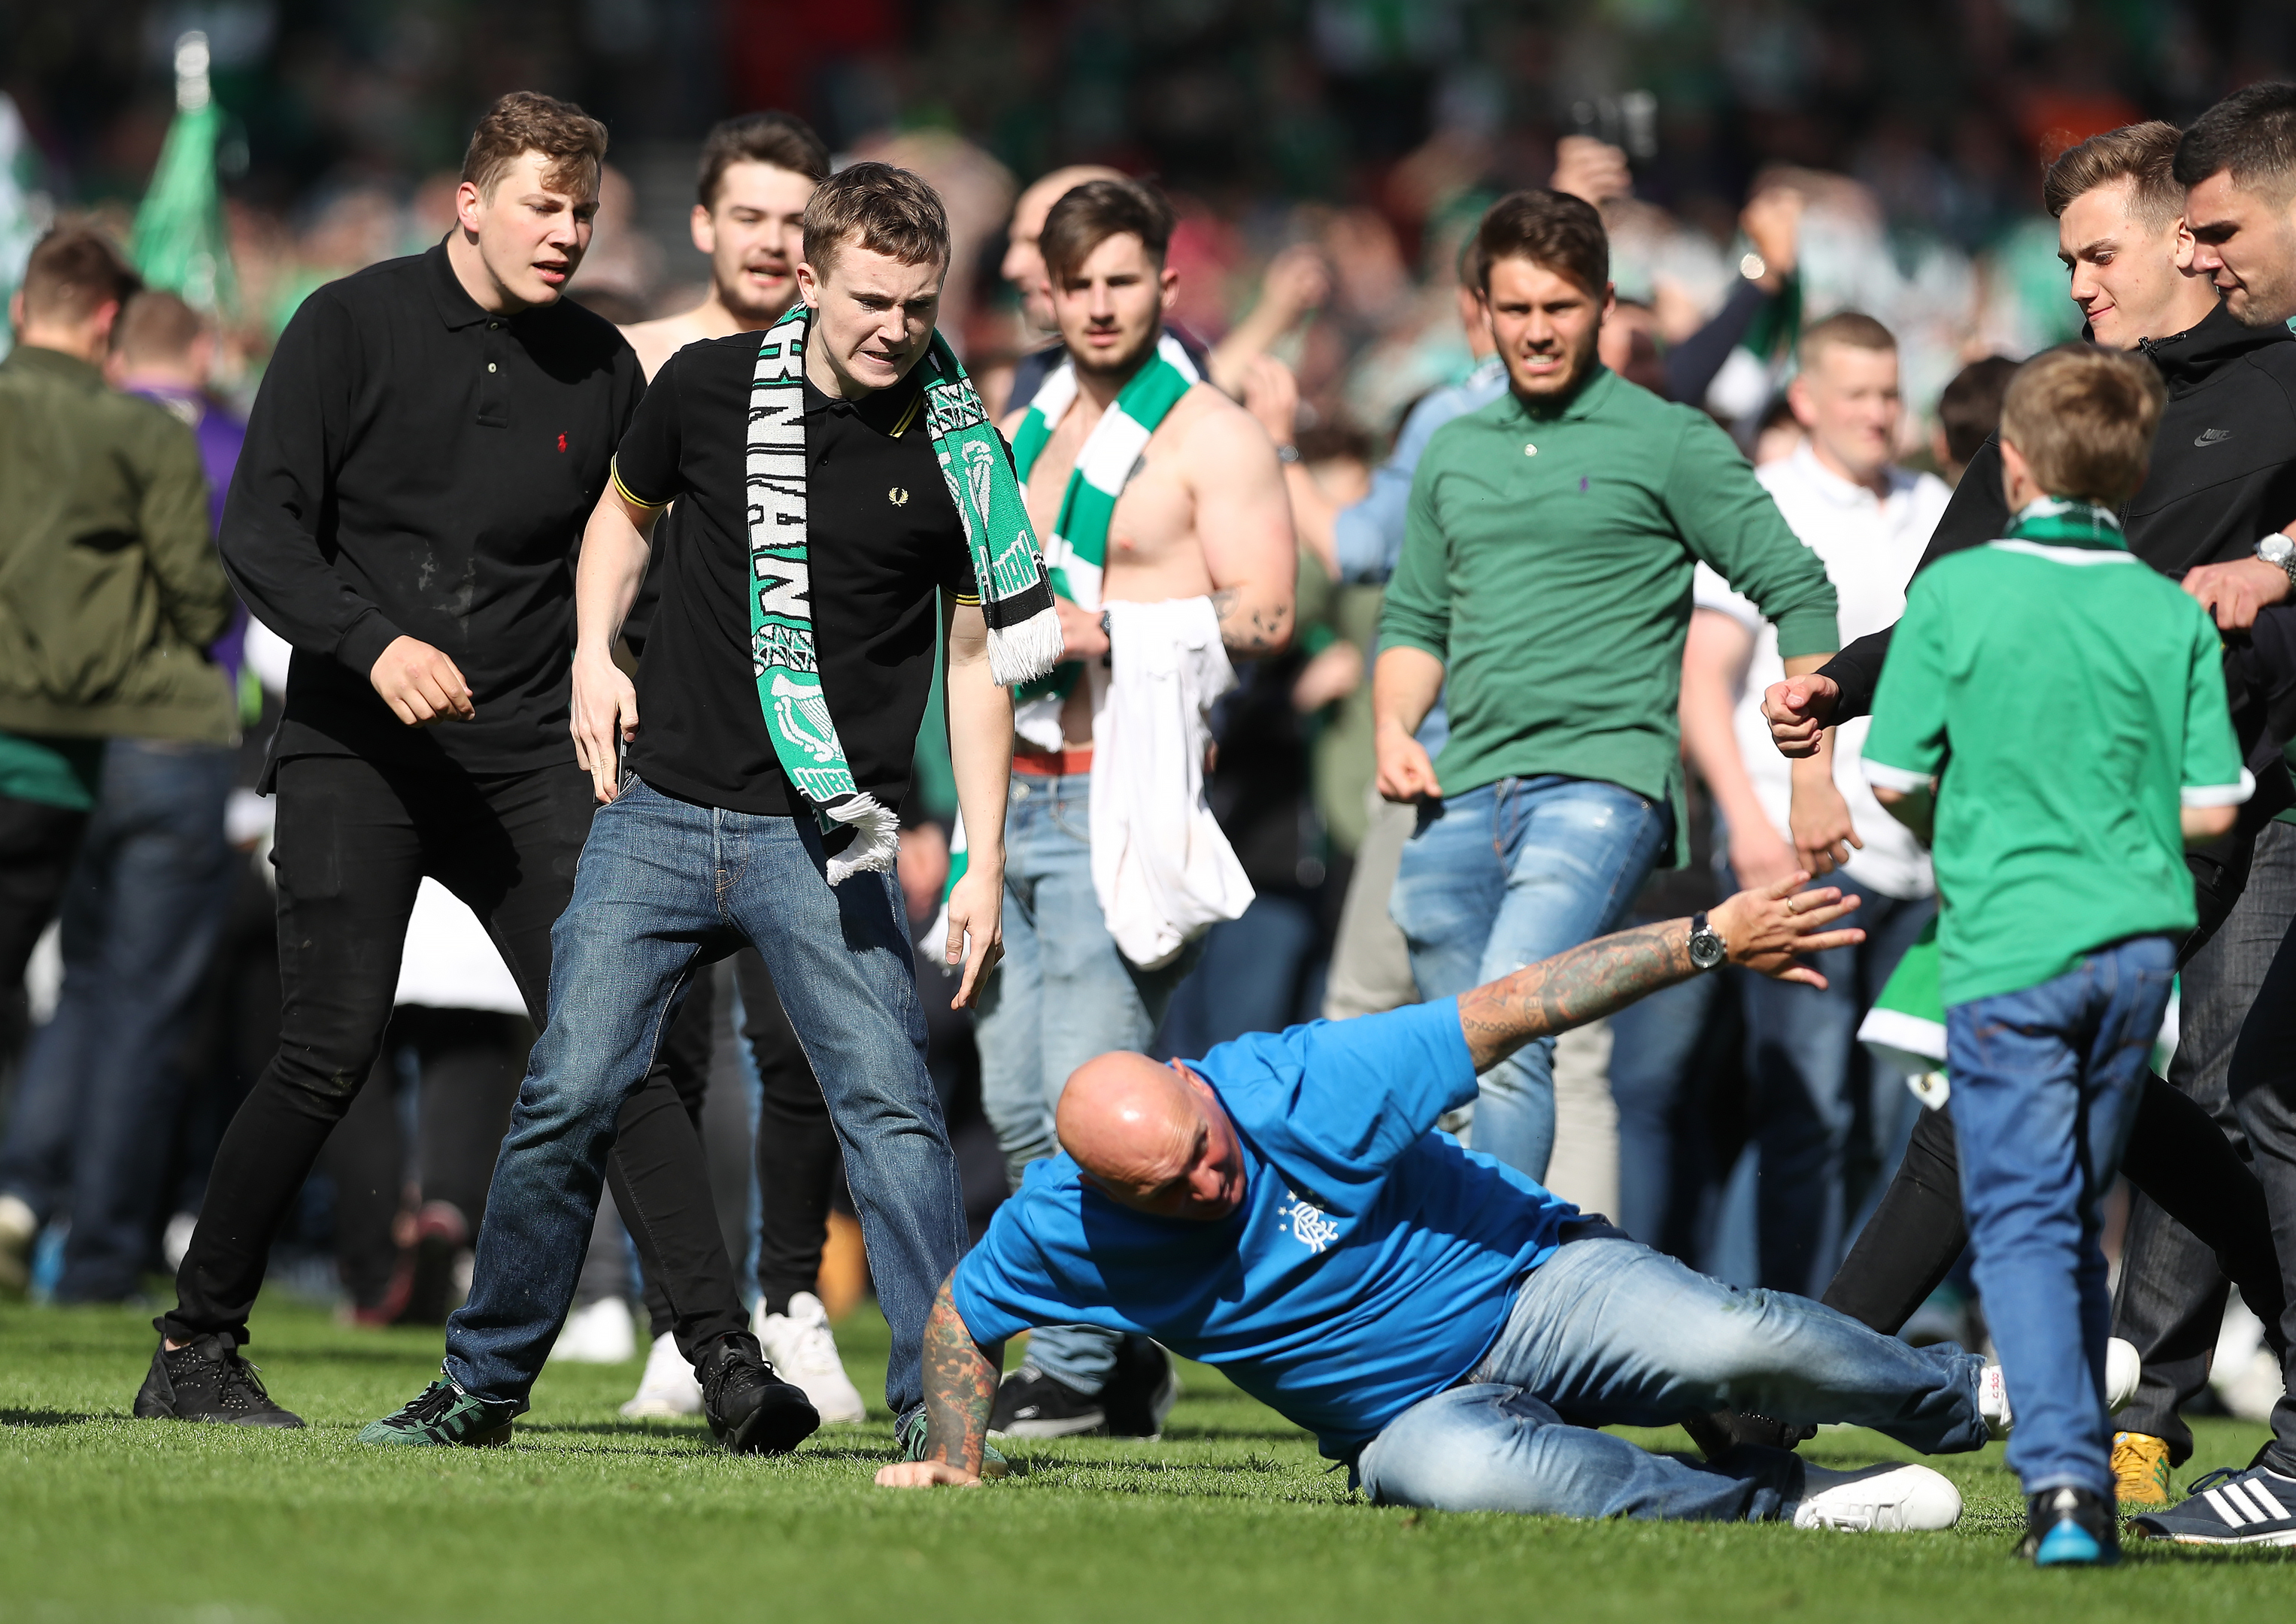 One of the ugly images that shames Scottish football.